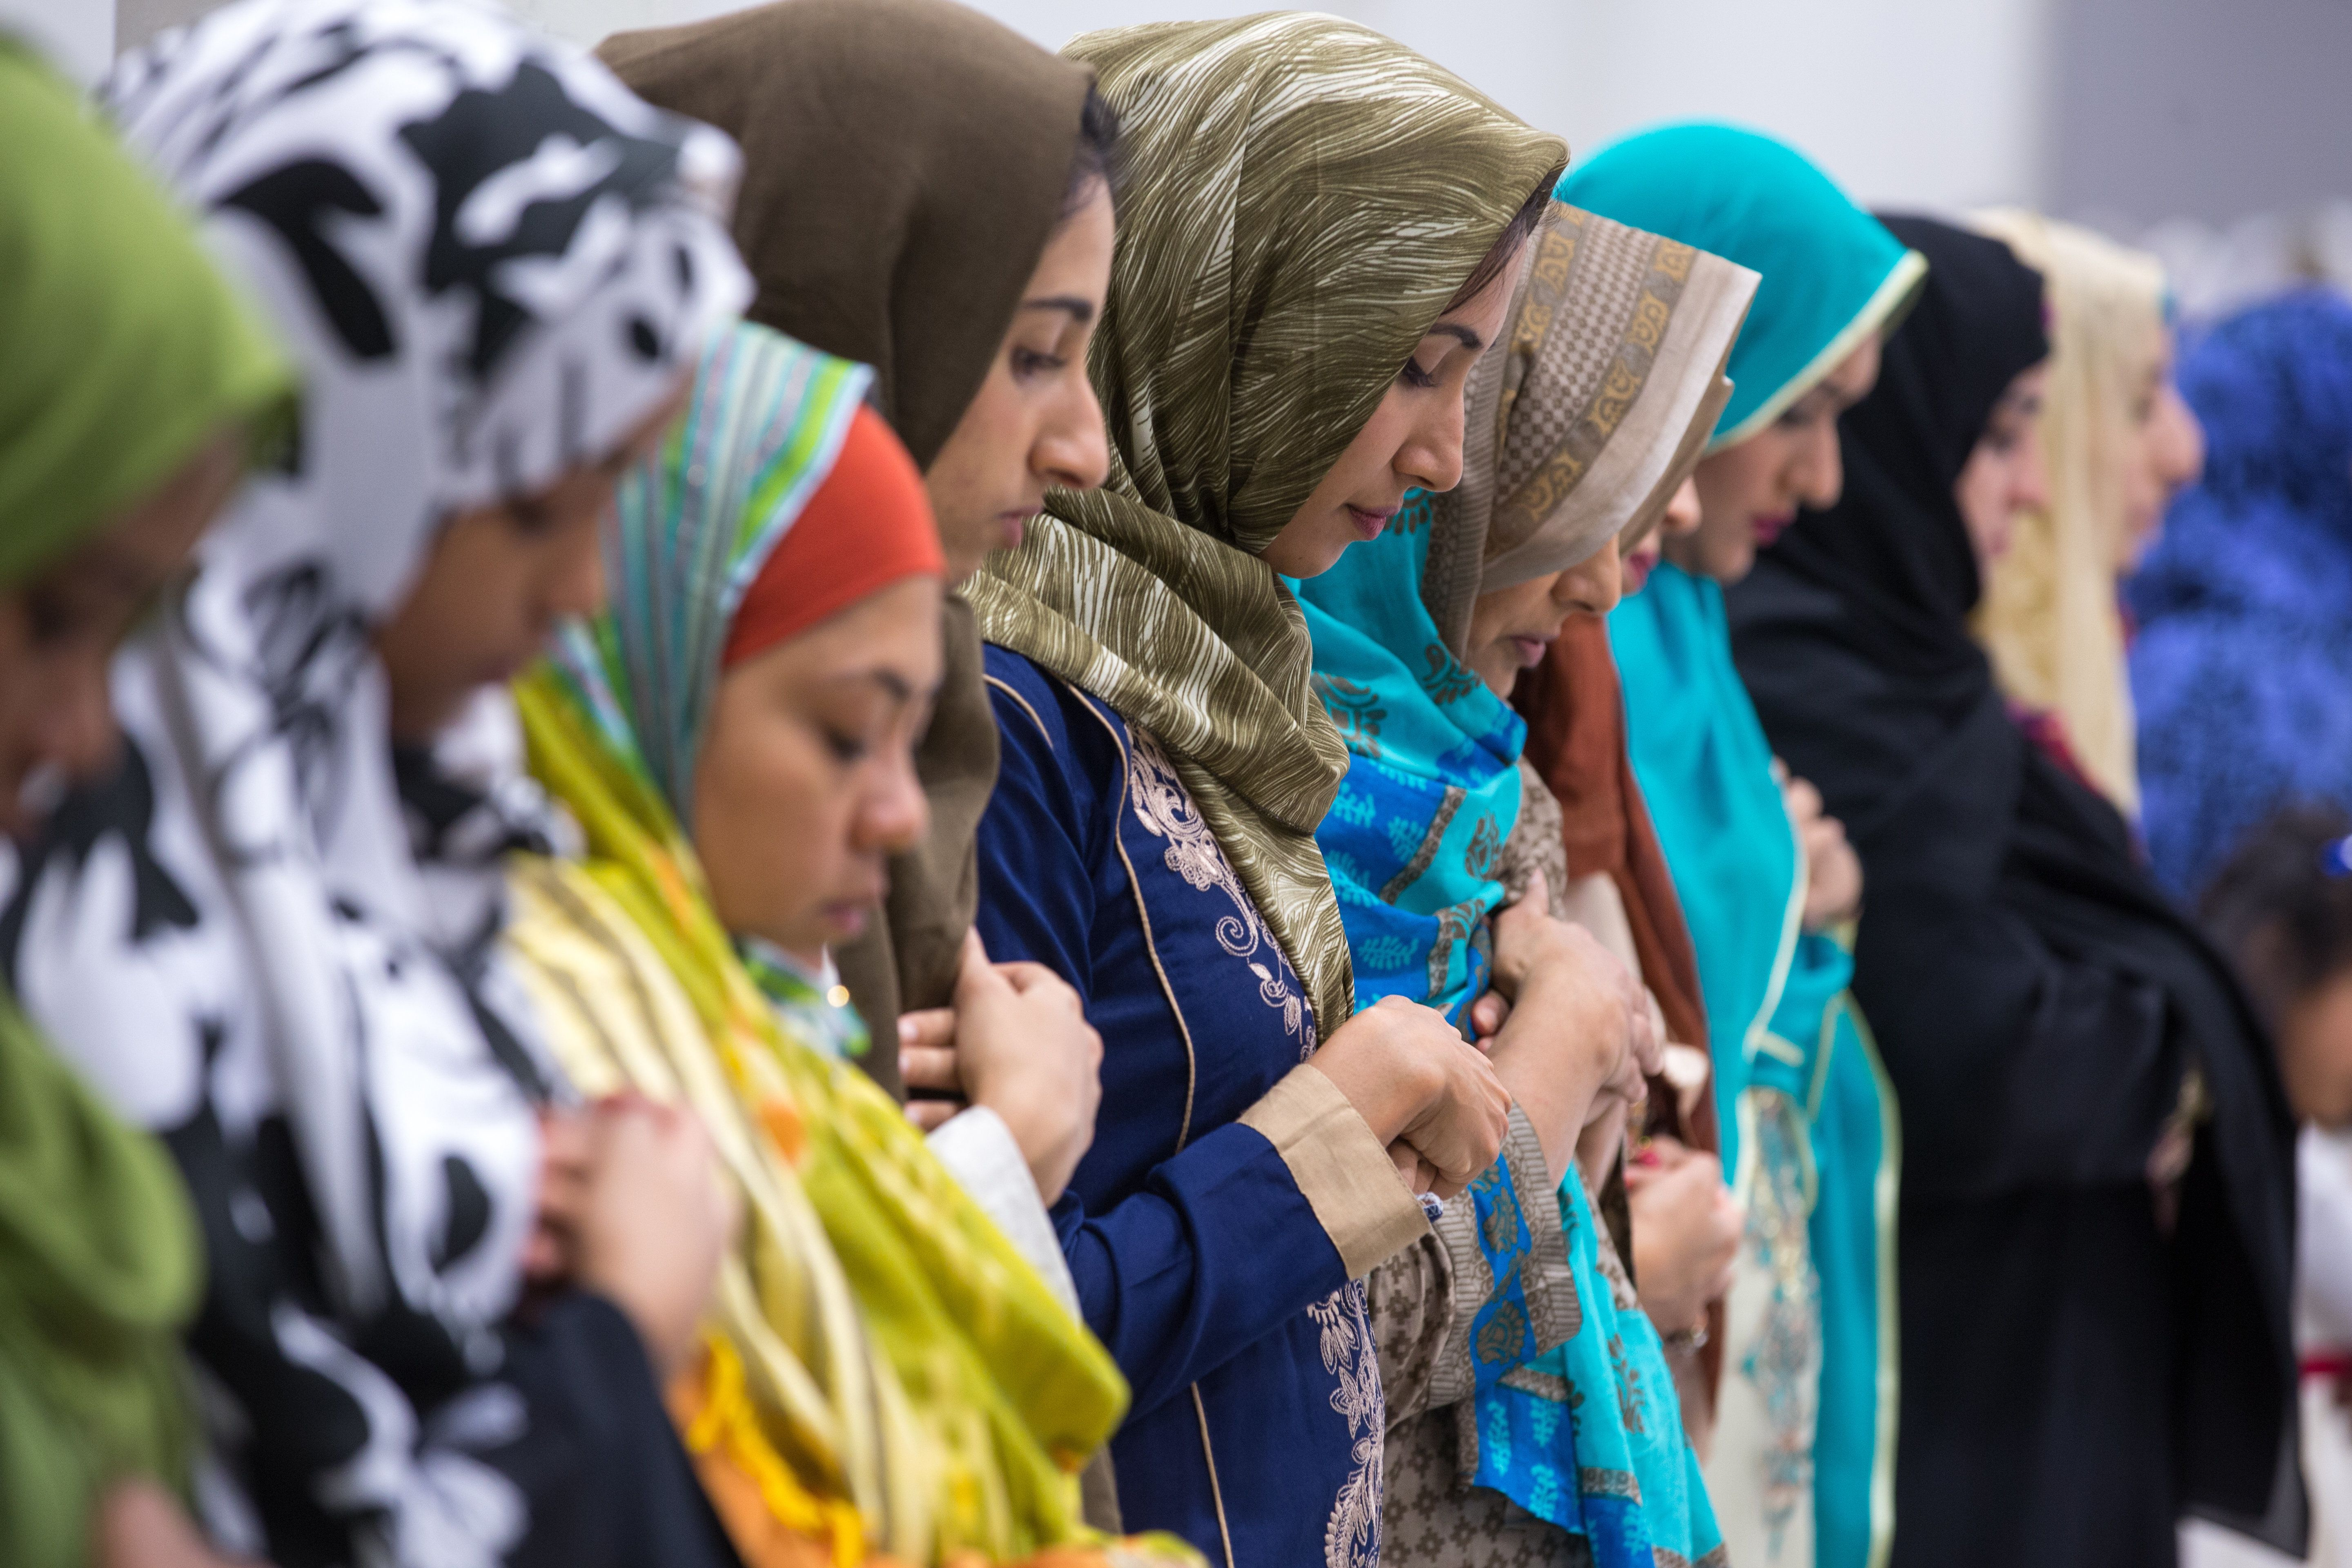 In a recent study, 45.5 percent of respondents say Muslimsdon't share their vision of American society.